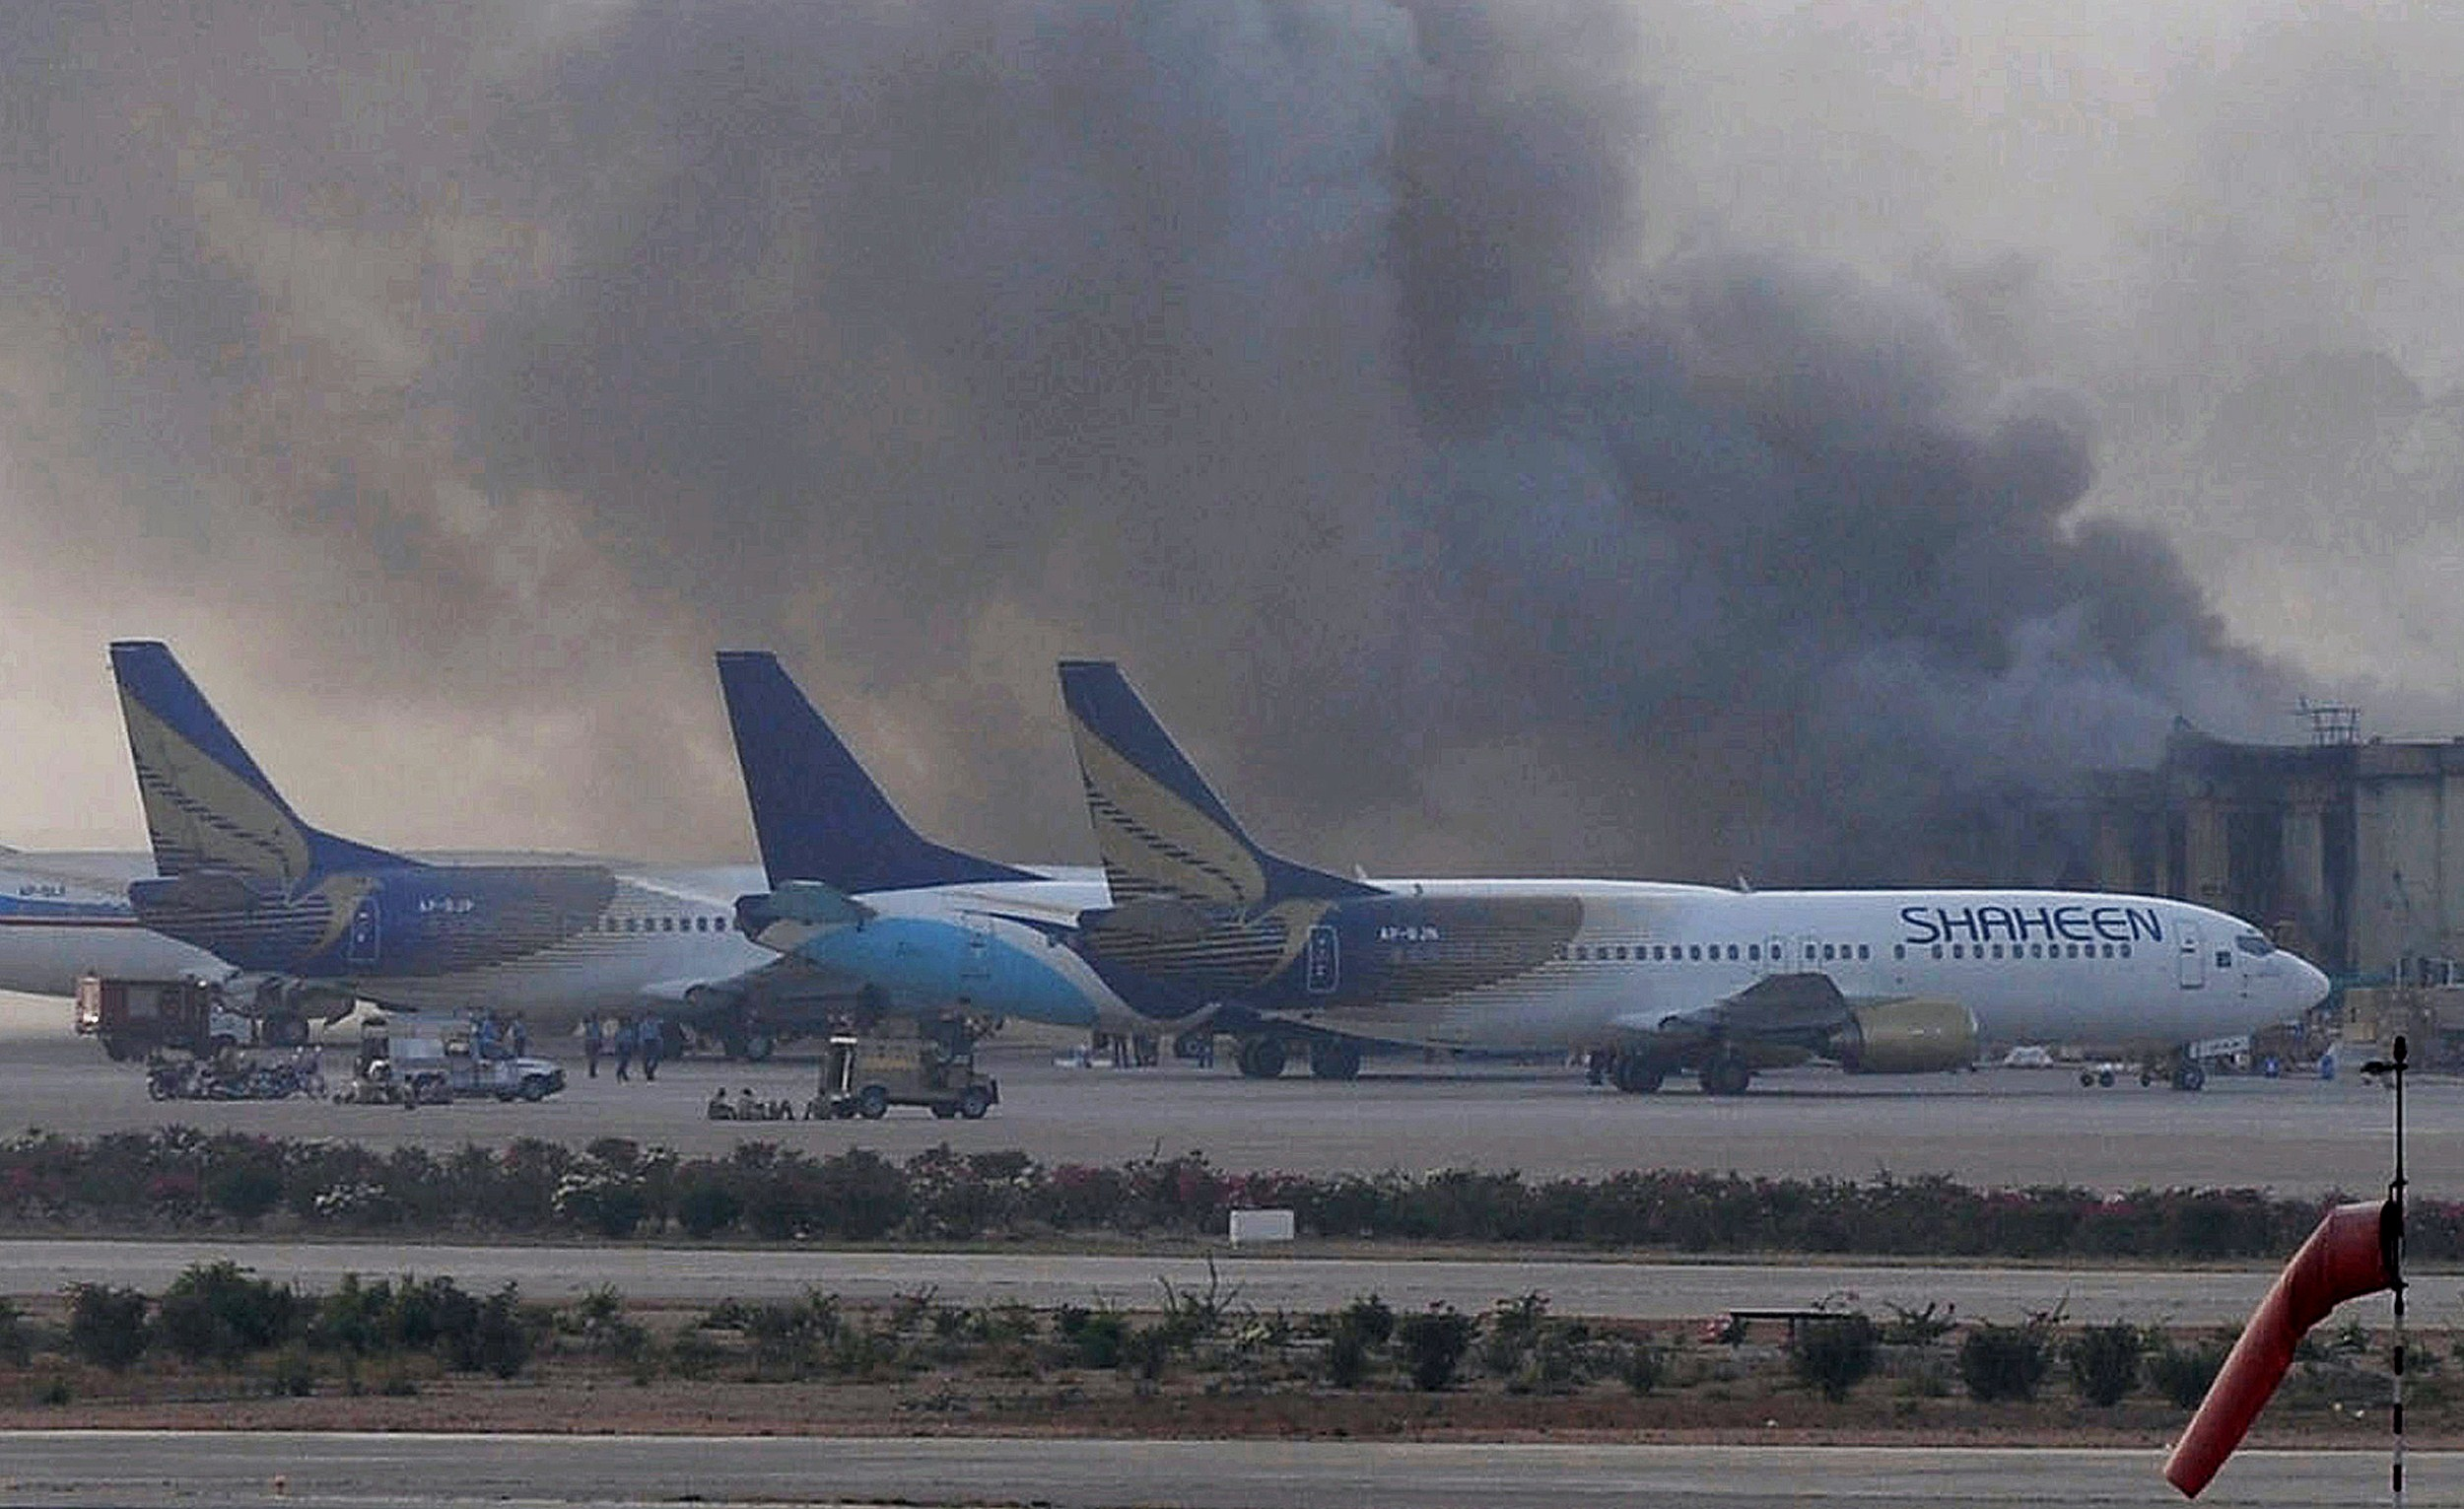 Smoke rises after militants launched an early morning assault at Jinnah International Airport in Karachi on June 9, 2014.  Pakistan's security forces said on June 9 they have relaunched a military operation at Karachi airport as gunfire resumed several hours after they announced the end of a militant siege that left 24 dead.       (AFP PHOTO / Rizwan TABASSUM)